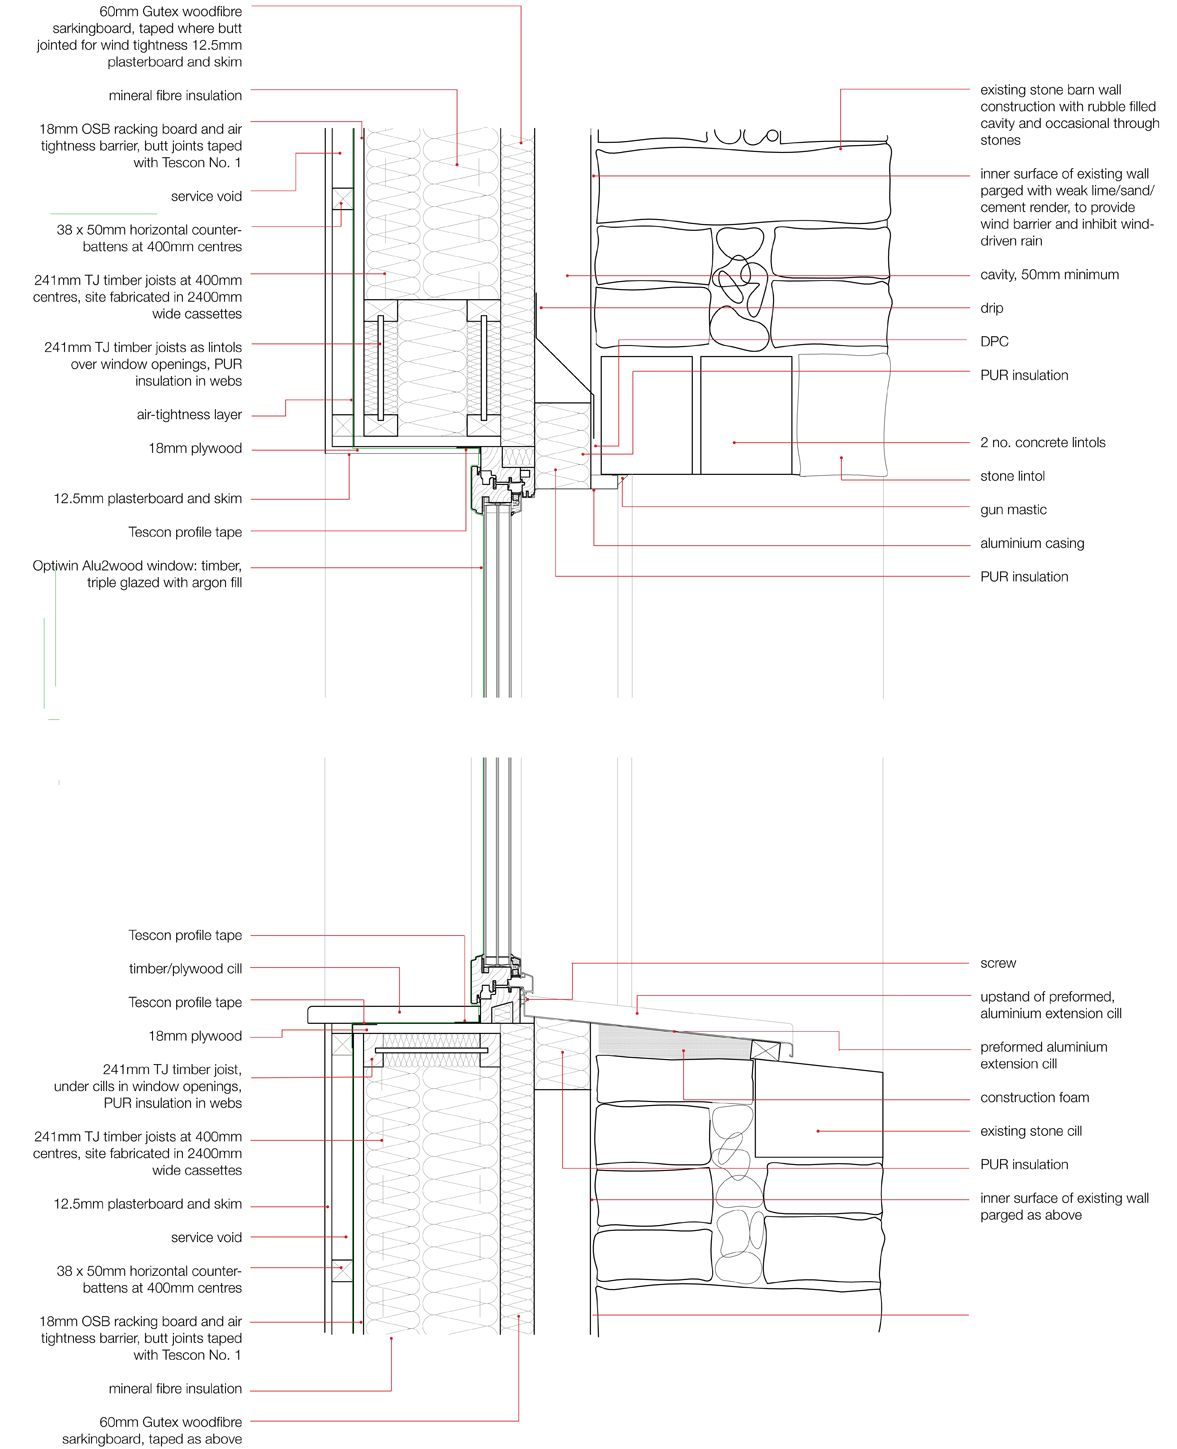 Pin By Ehab Soliman On Construction Details